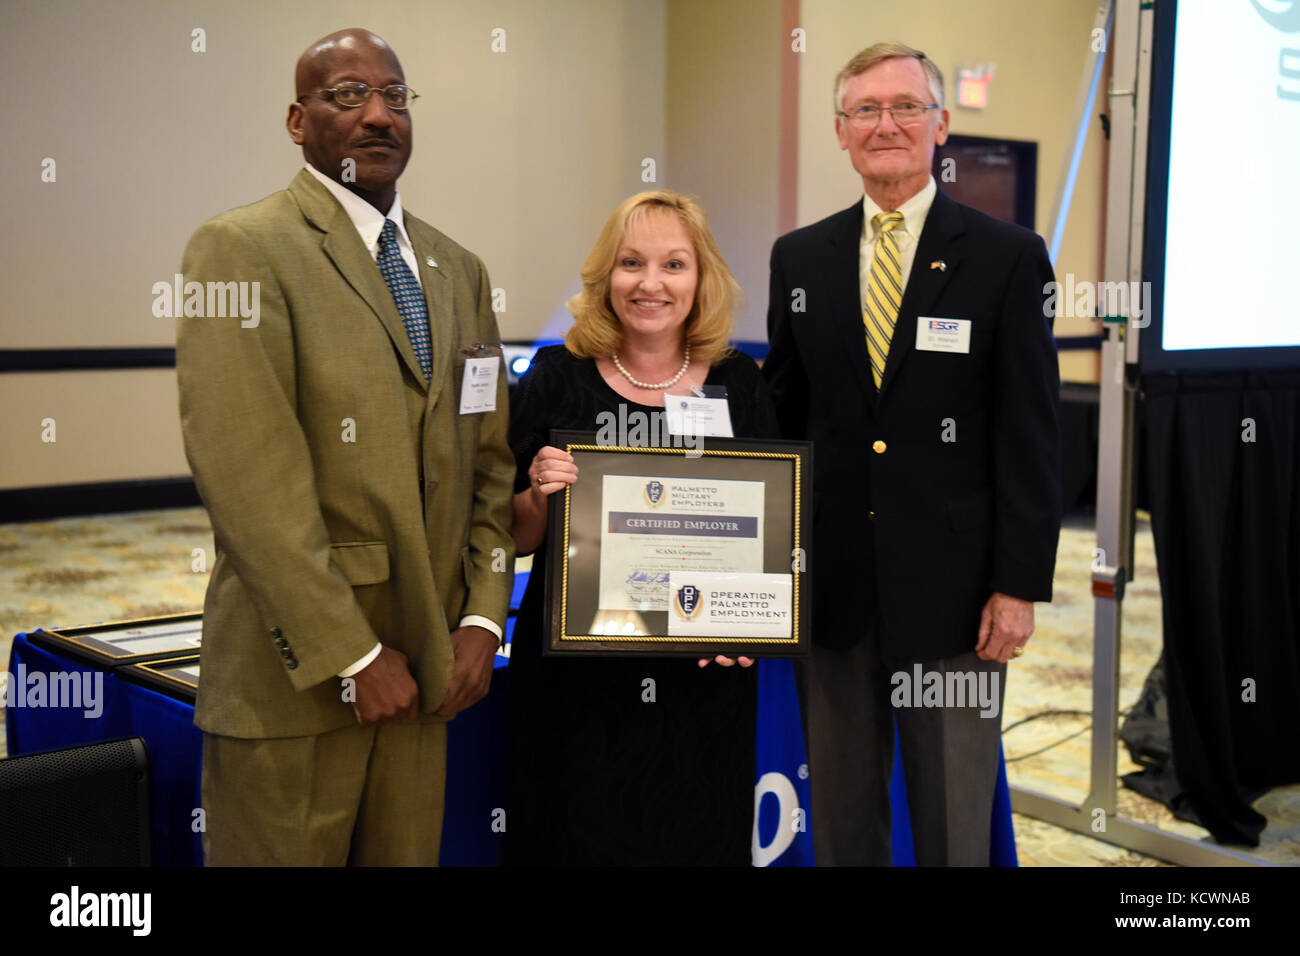 South Carolina employers are awarded and recognized as a certified Palmetto Military Employer during the 3rd annual - Stock Image